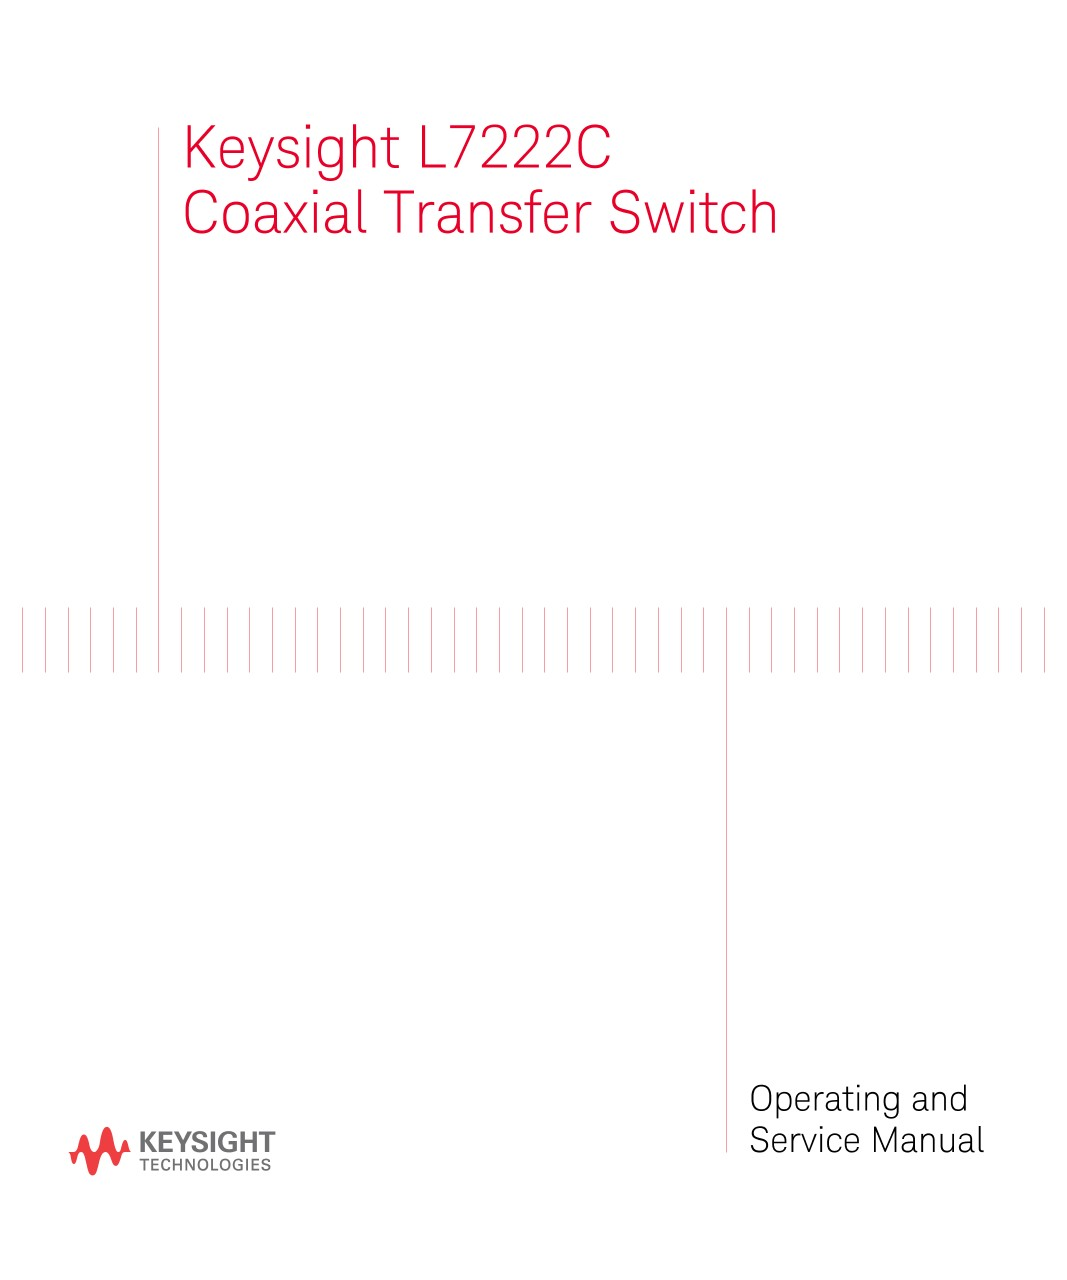 Keysight L7222C Coaxial Transfer Switch Operating and Service ...